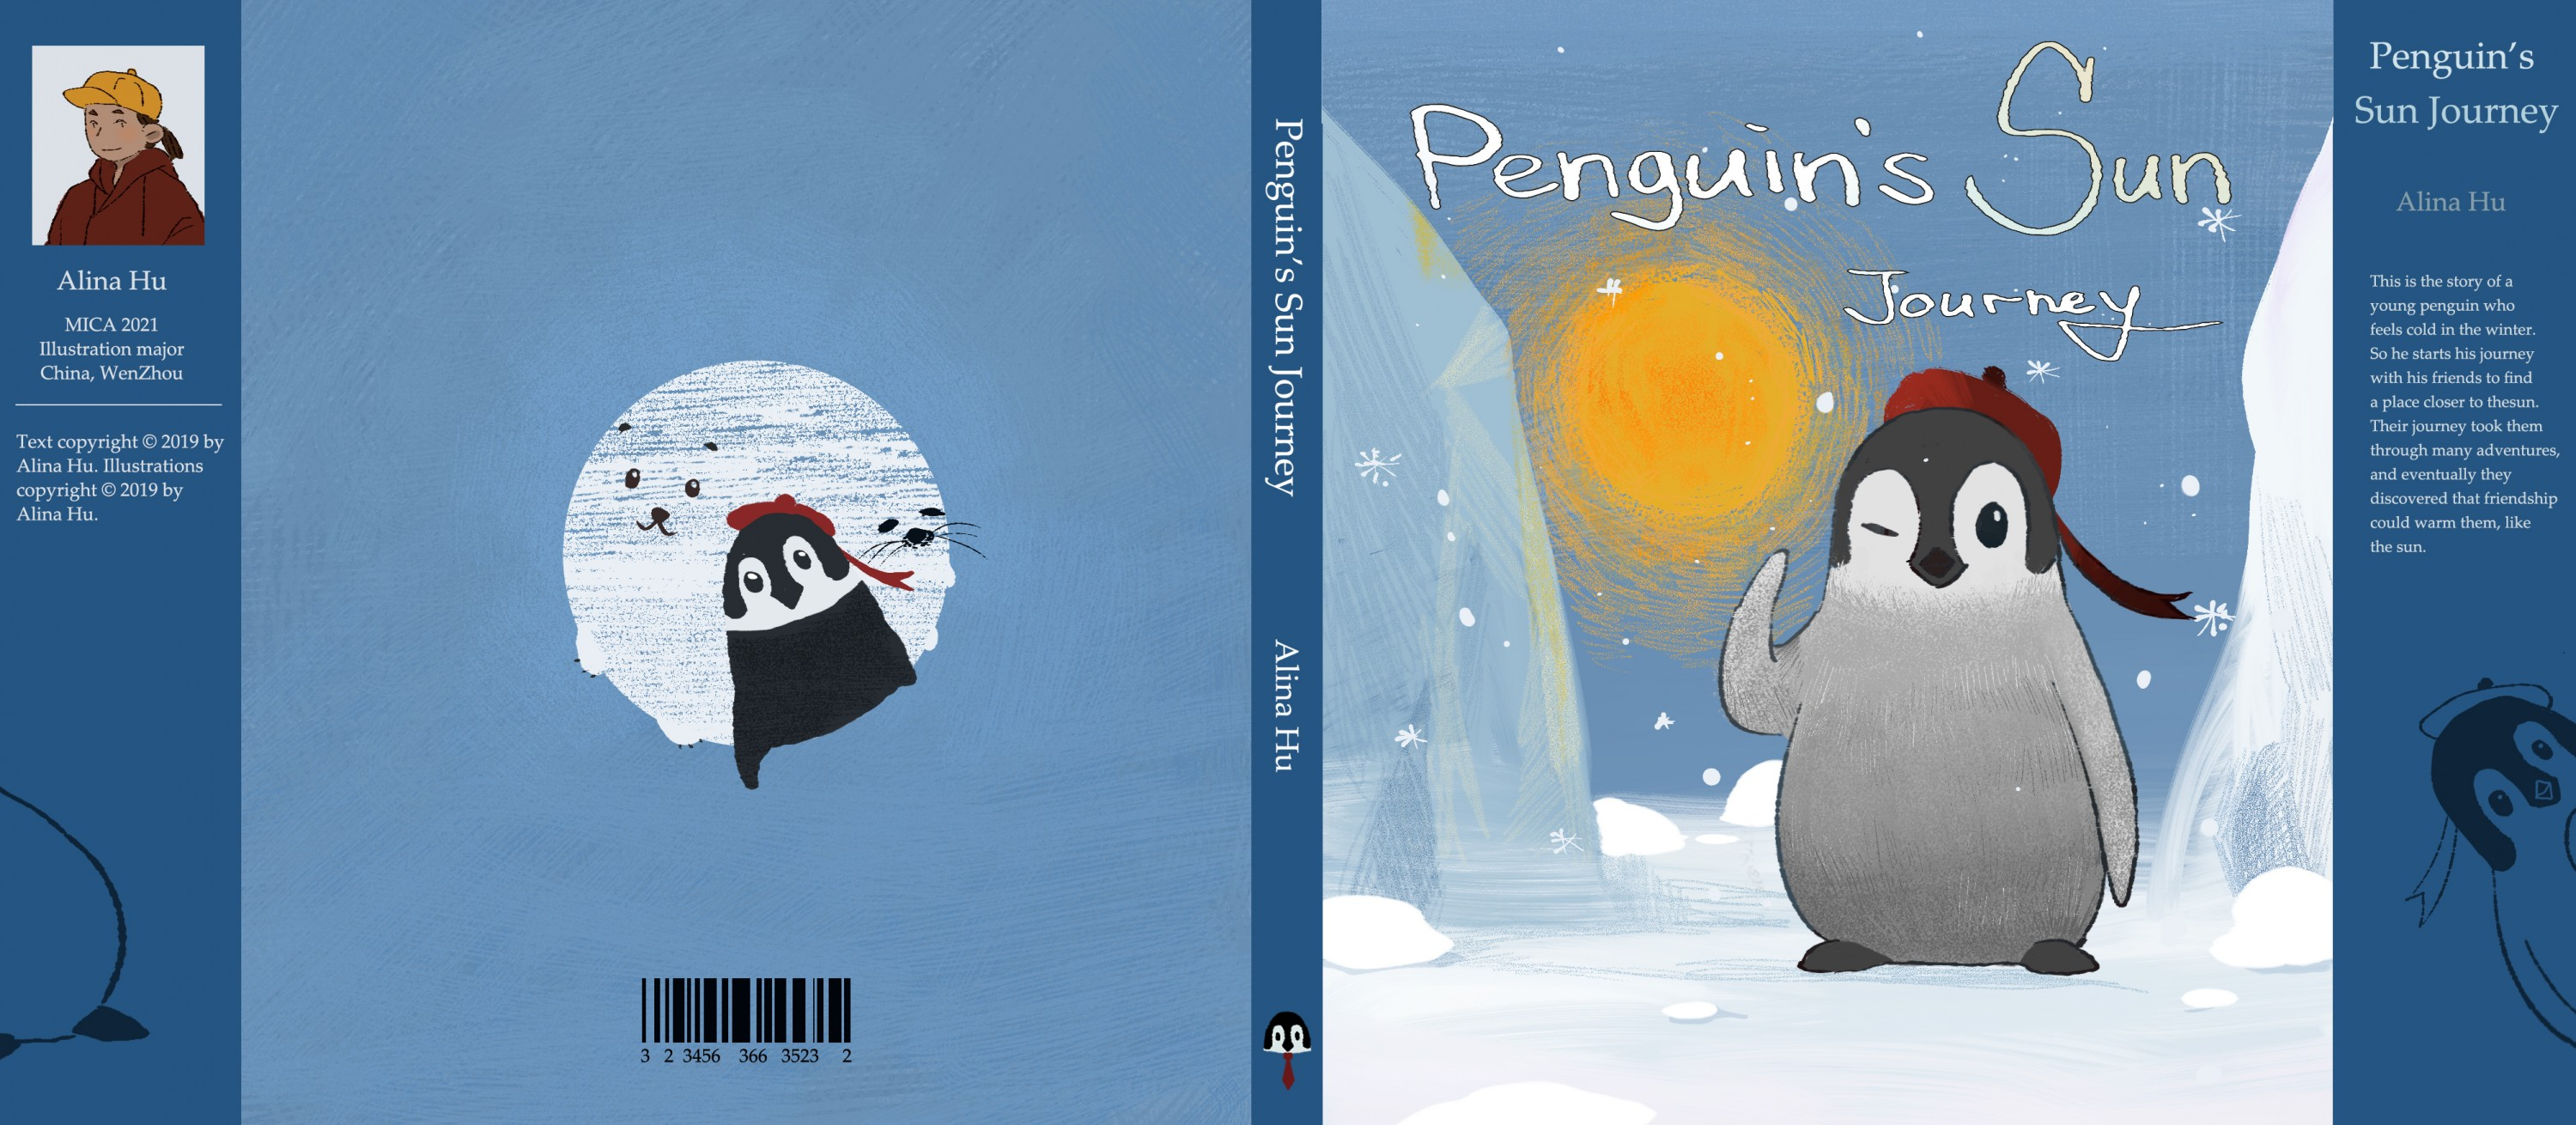 Children's book about a penguin trying to find a place where near the sun.